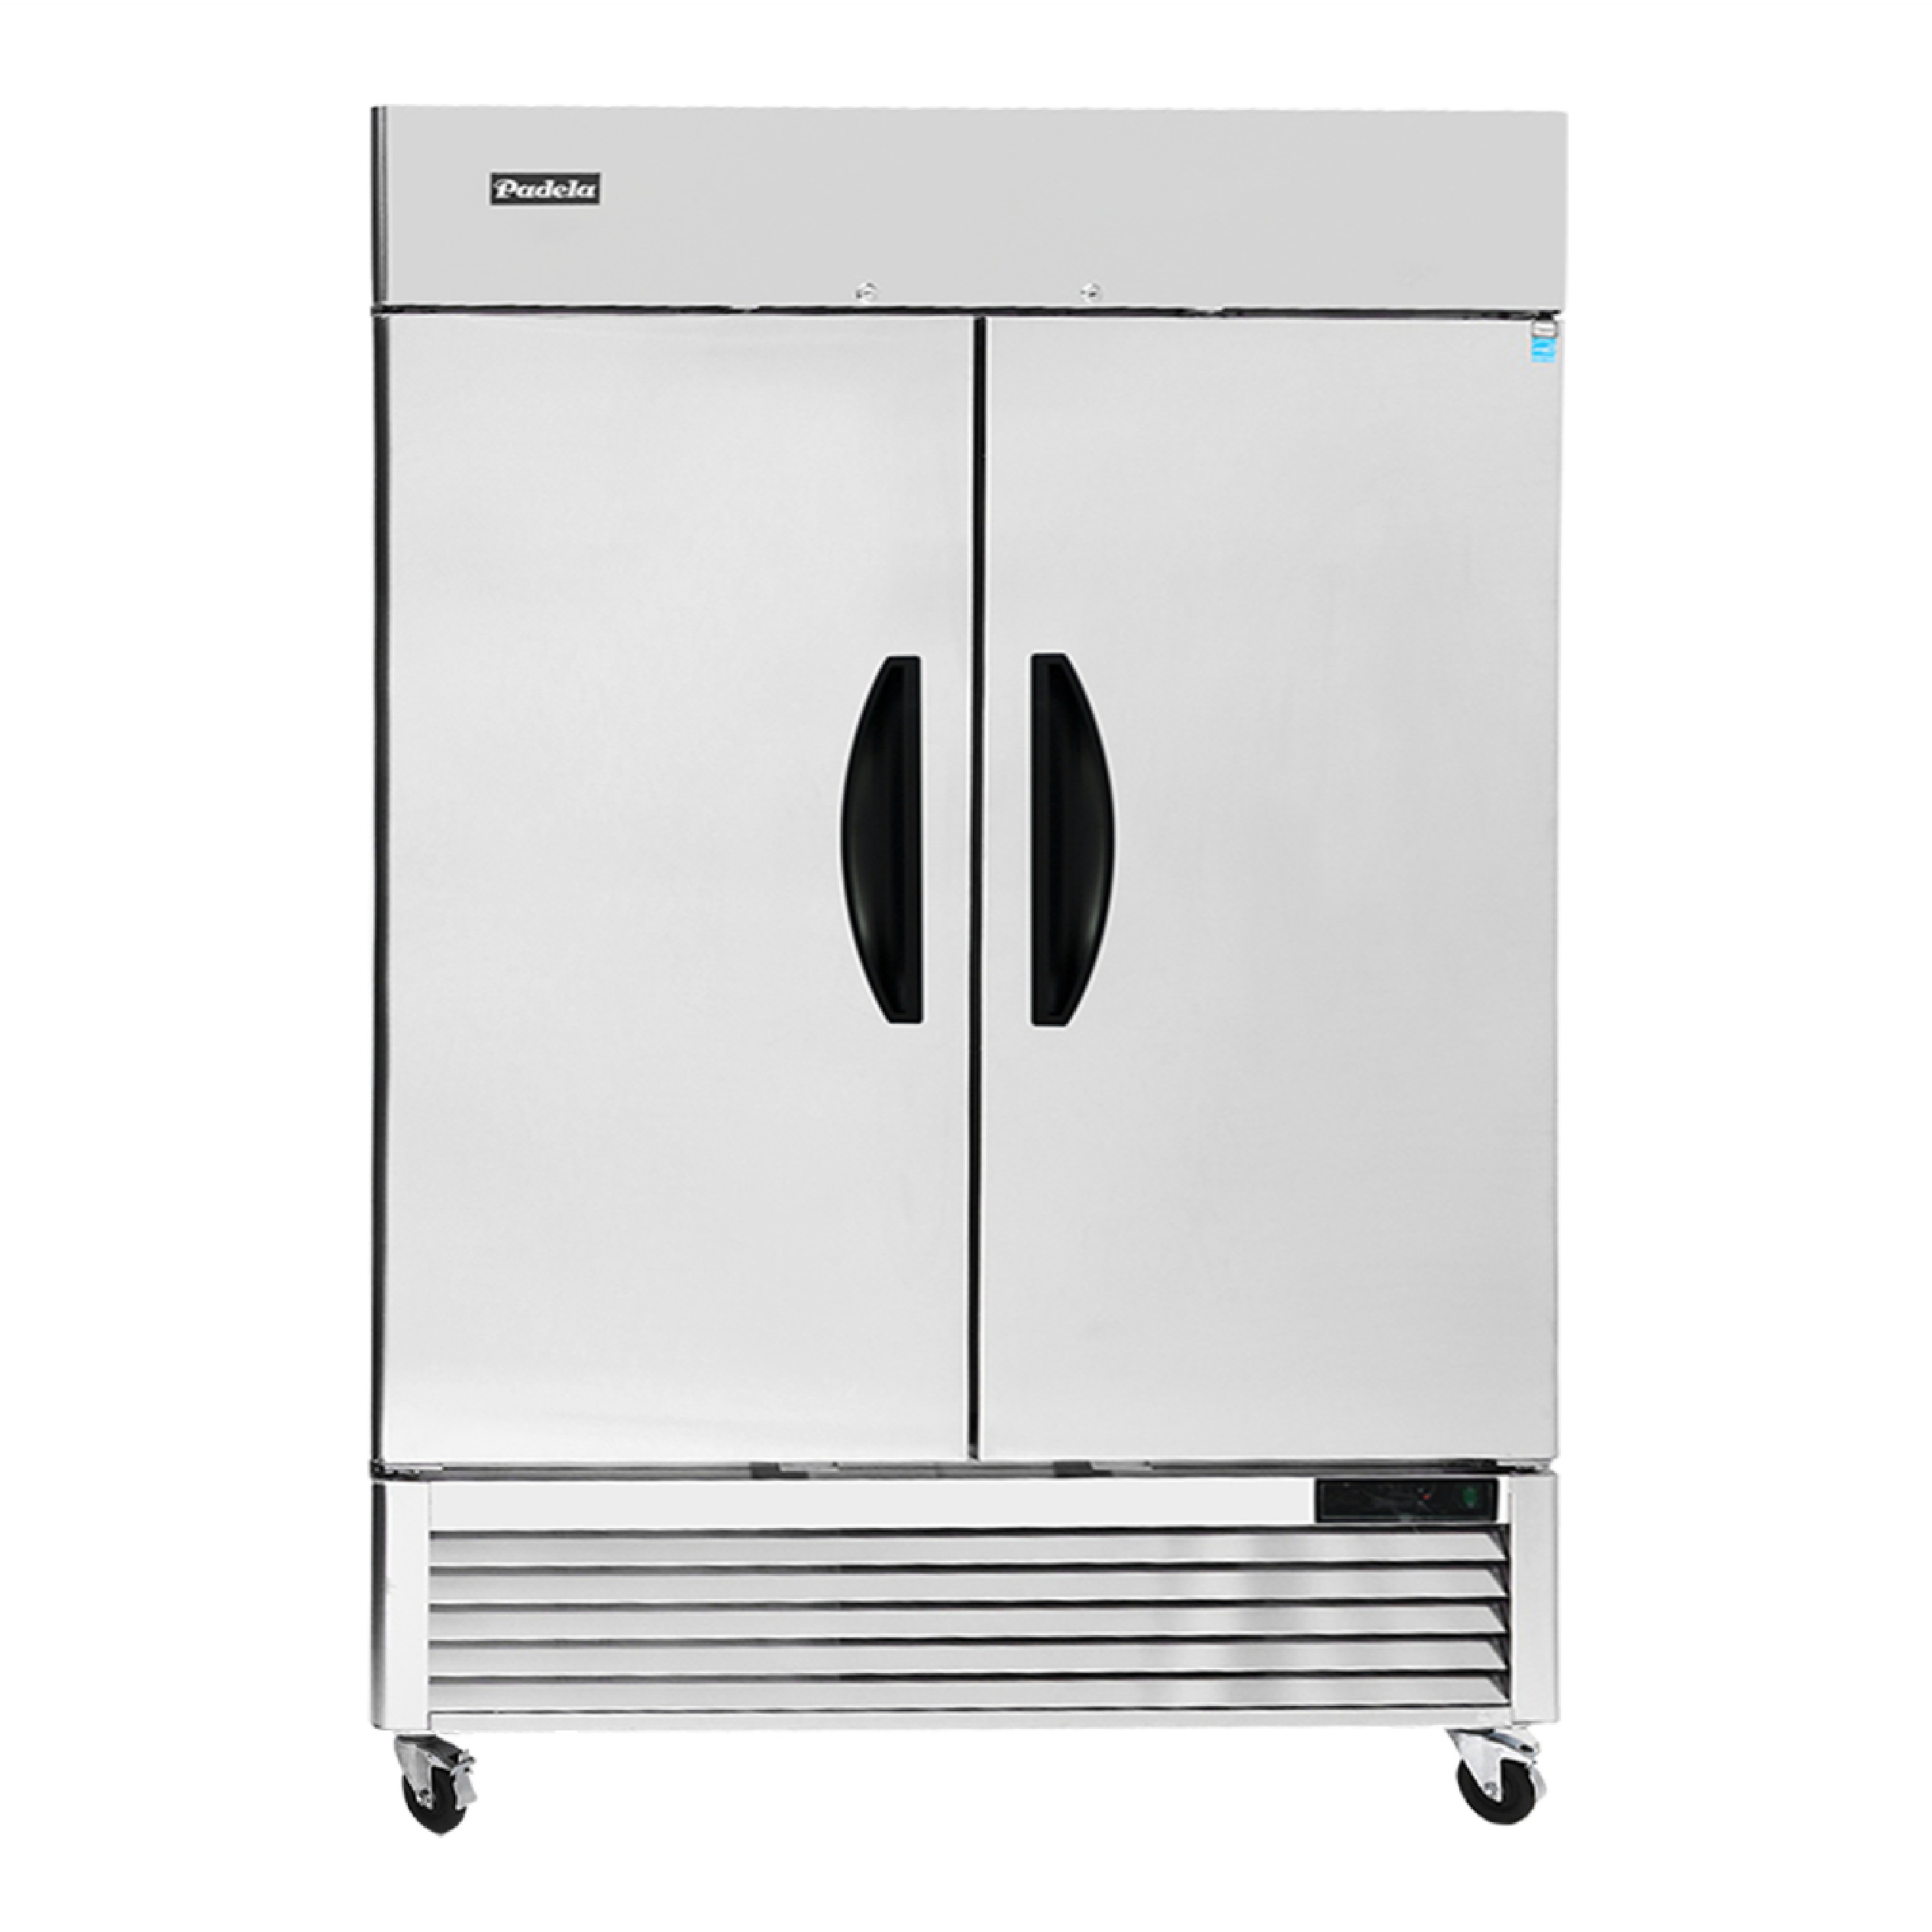 "Padela- Freezer, reach-in, two-section, 54-3/8""W x 31-1/2""D x 83-1/8""H, (PDB-2F-HC)"